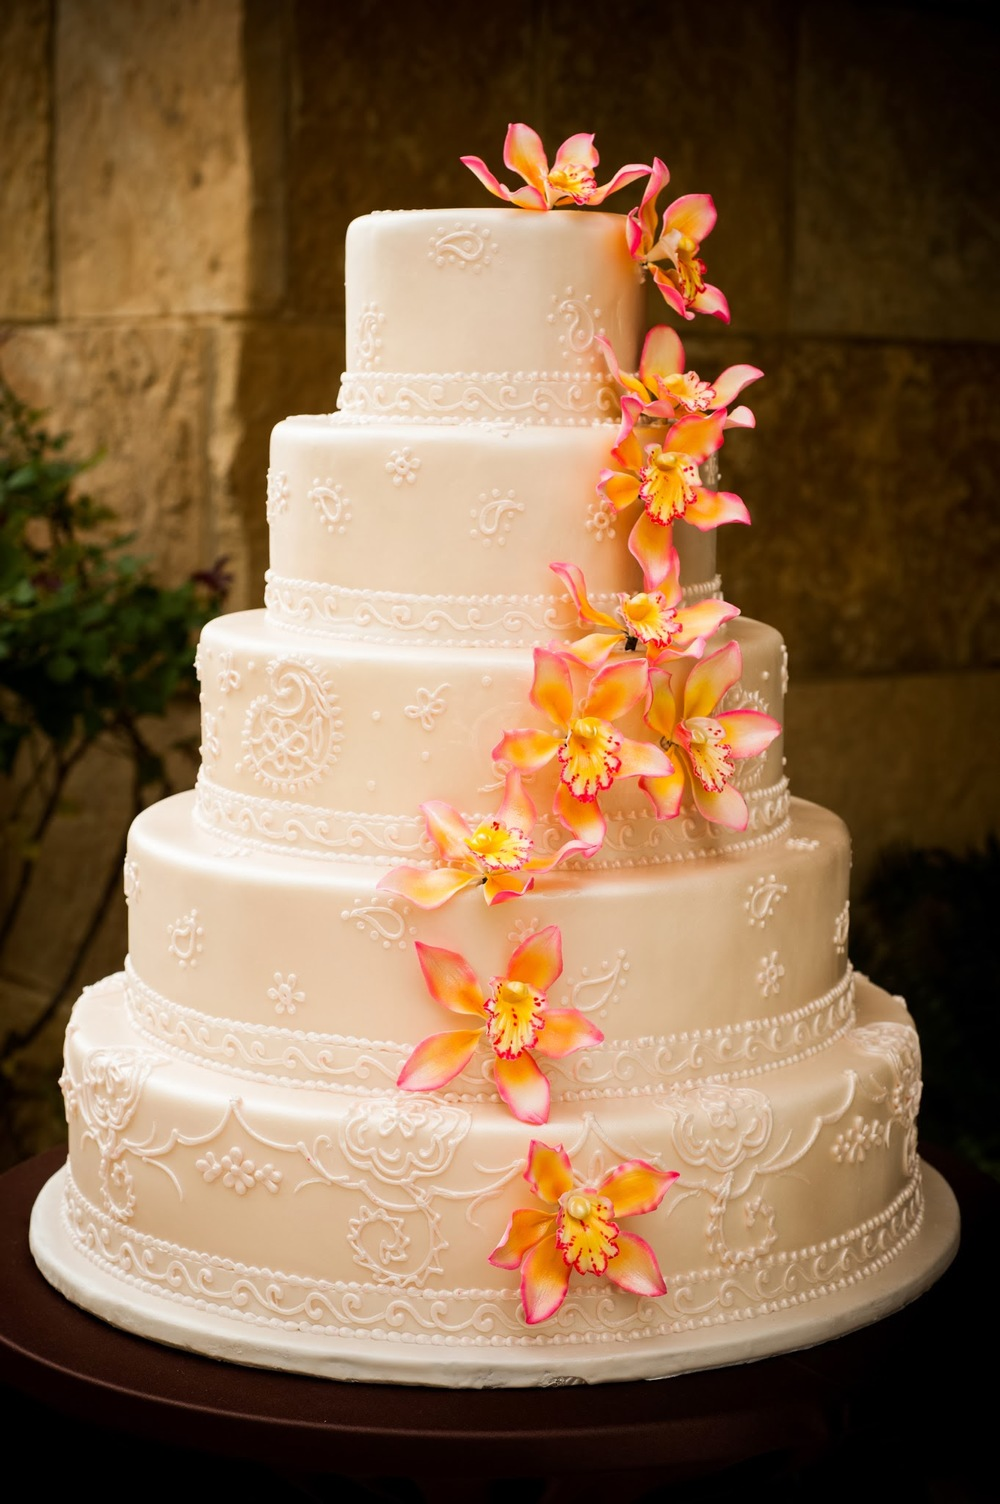 Sugar Flowers Wedding Cake | Edible Art Bakery of Raleigh